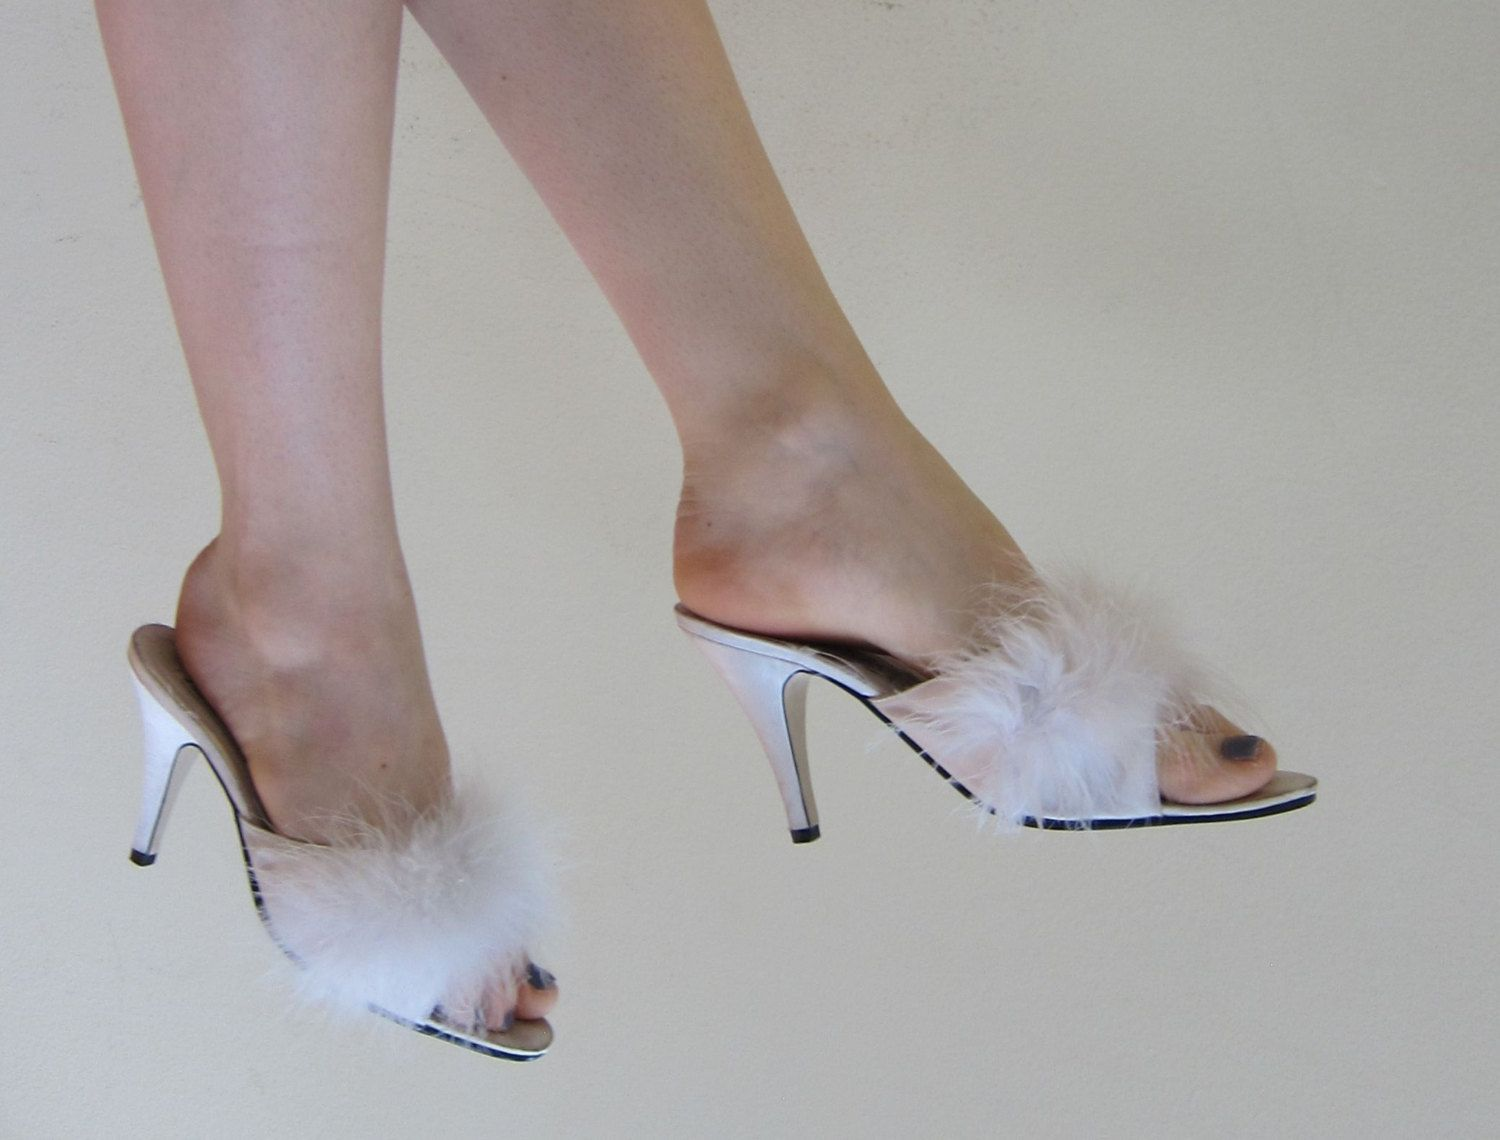 3290dd3508fc8 Vintage White Satin and Ostrich Feather Mules   90s Does 50s Pinup Boudoir  Slippers Frederick s of Hollywood   7 1 2 by BasyaBerkman on Etsy